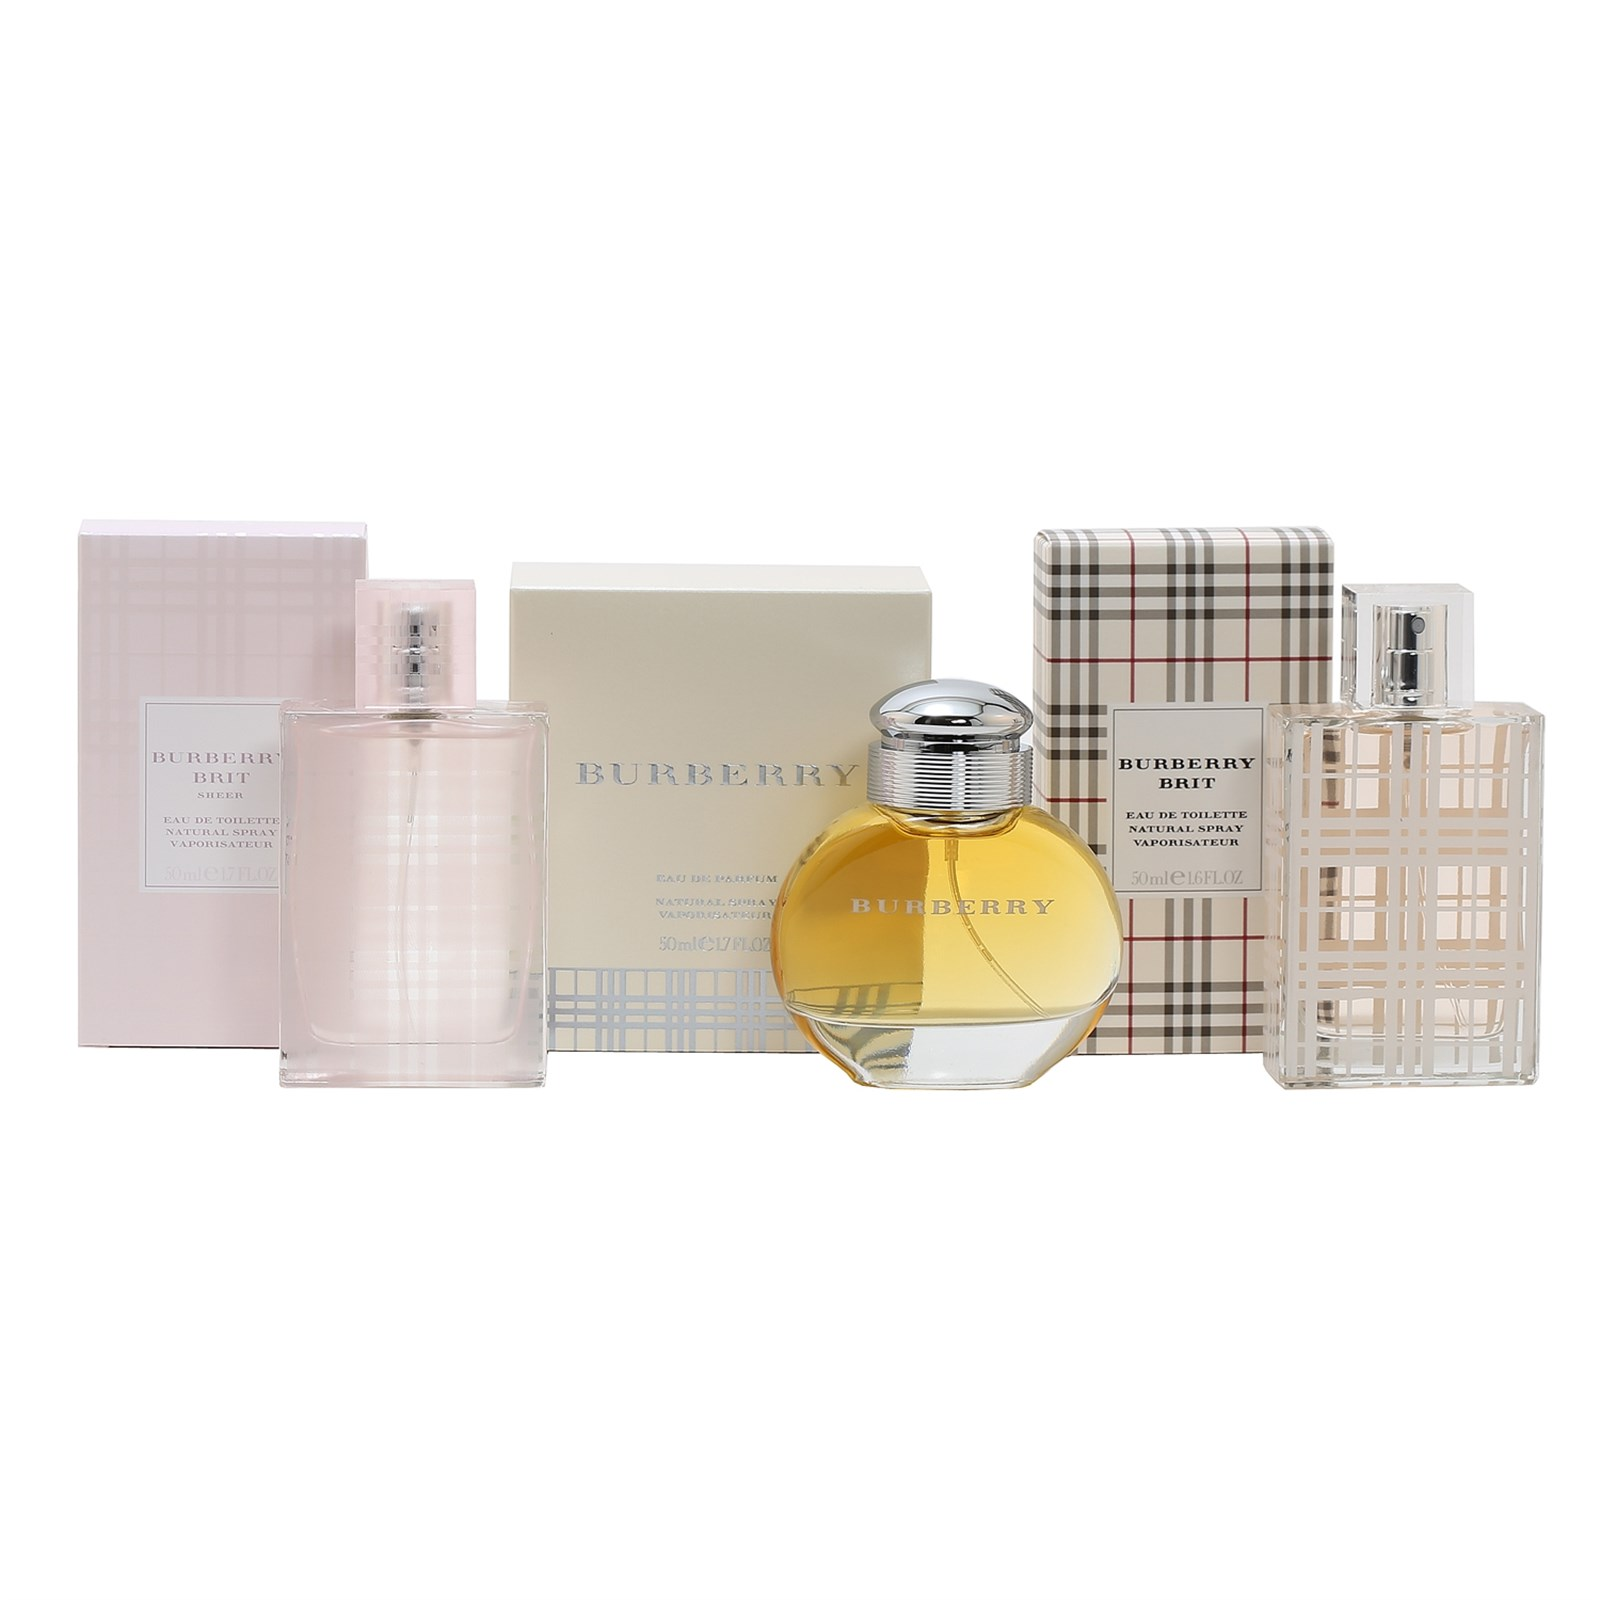 50% off Burberry Fragrances - $35.99 w/ Free Shipping